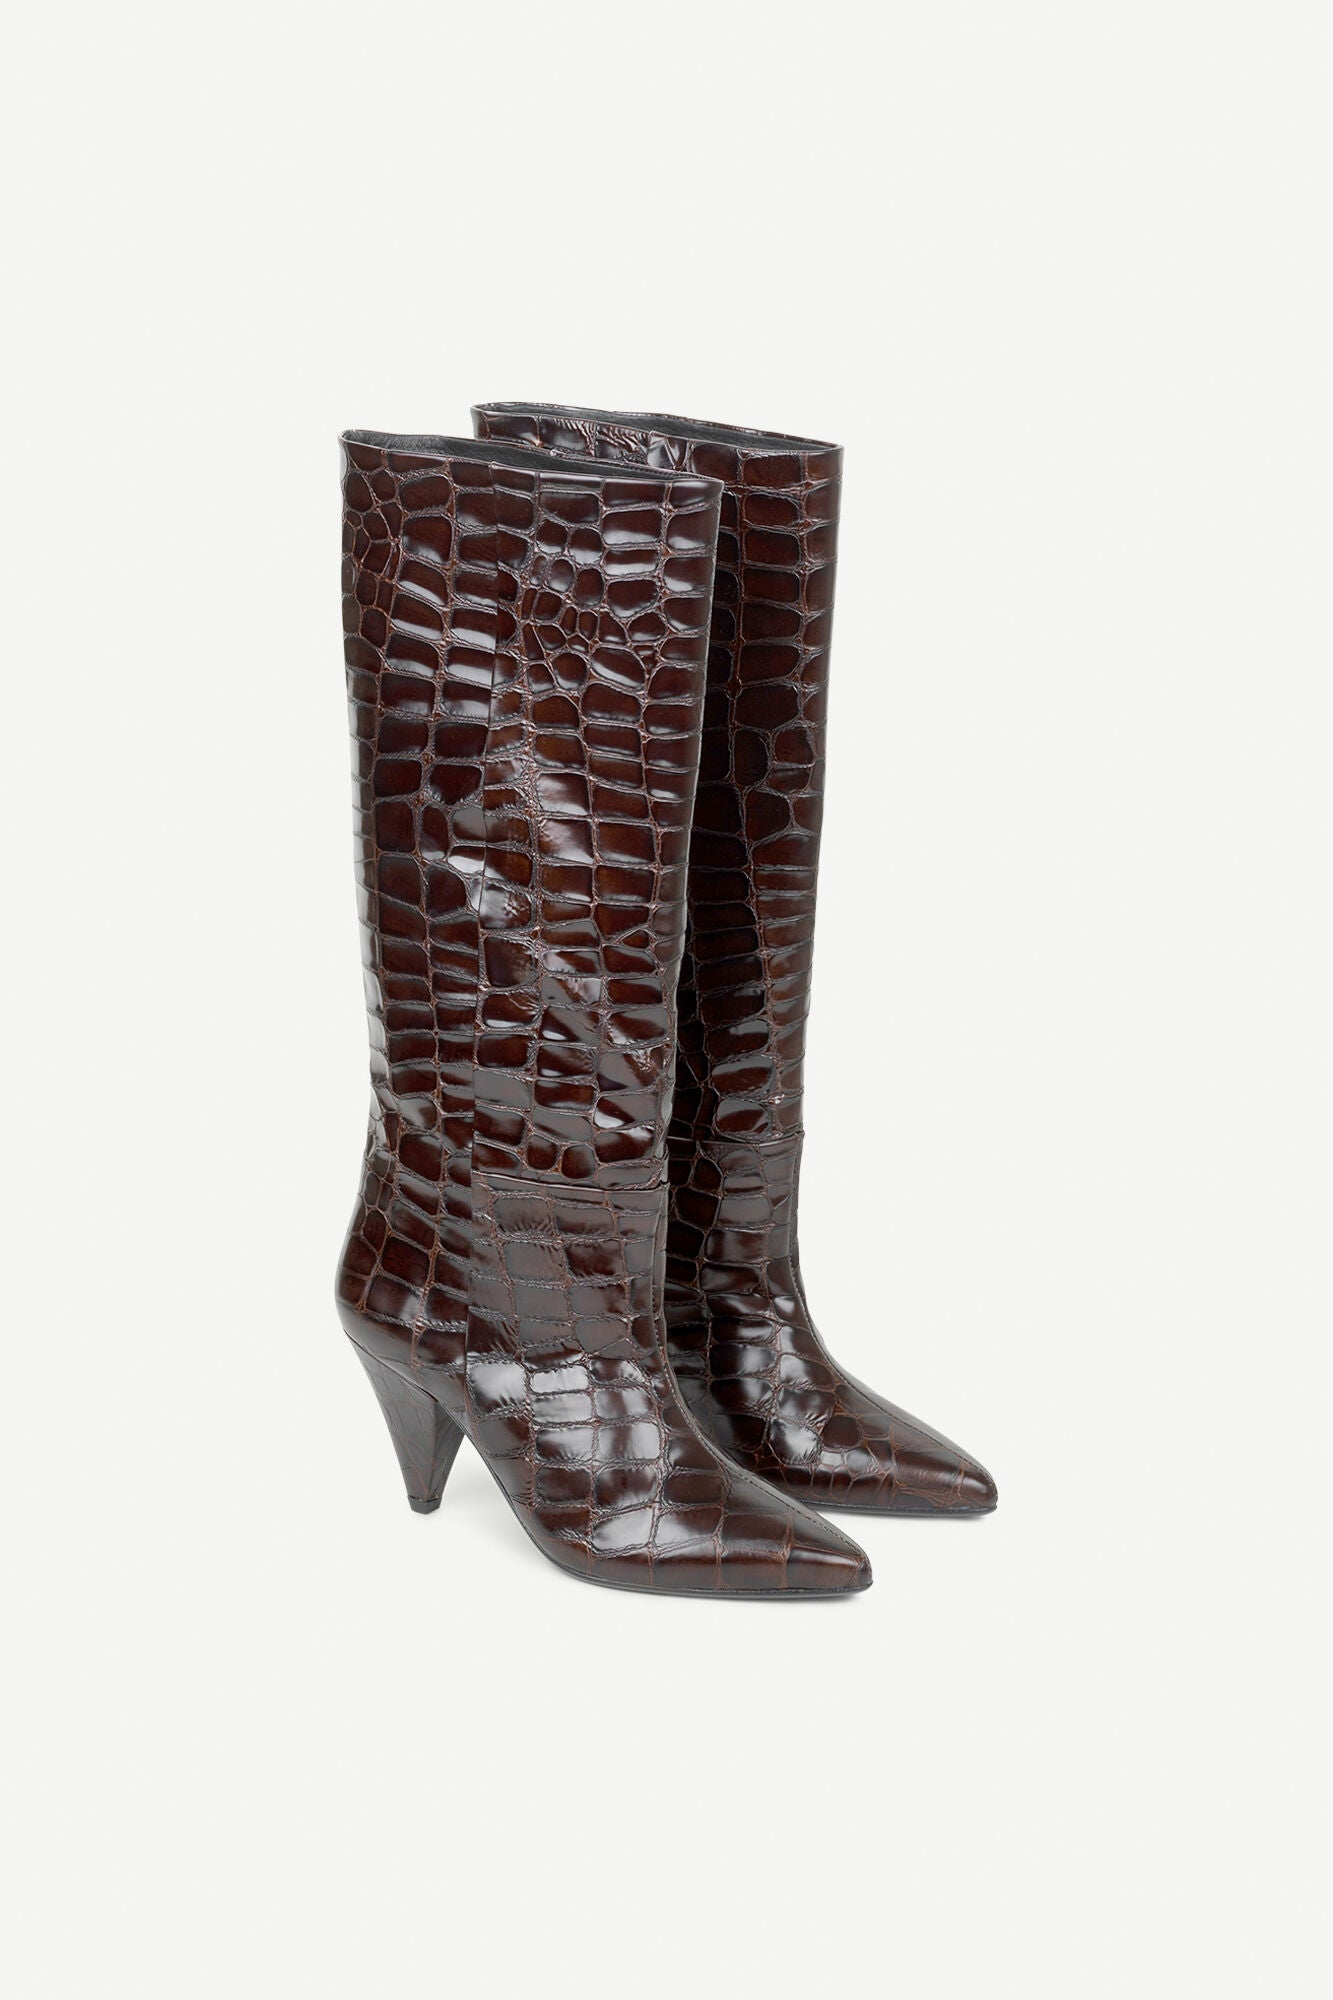 CROC EMBOSSED LEATHER HIGH BOOTS IN CHOCLATE BROWN